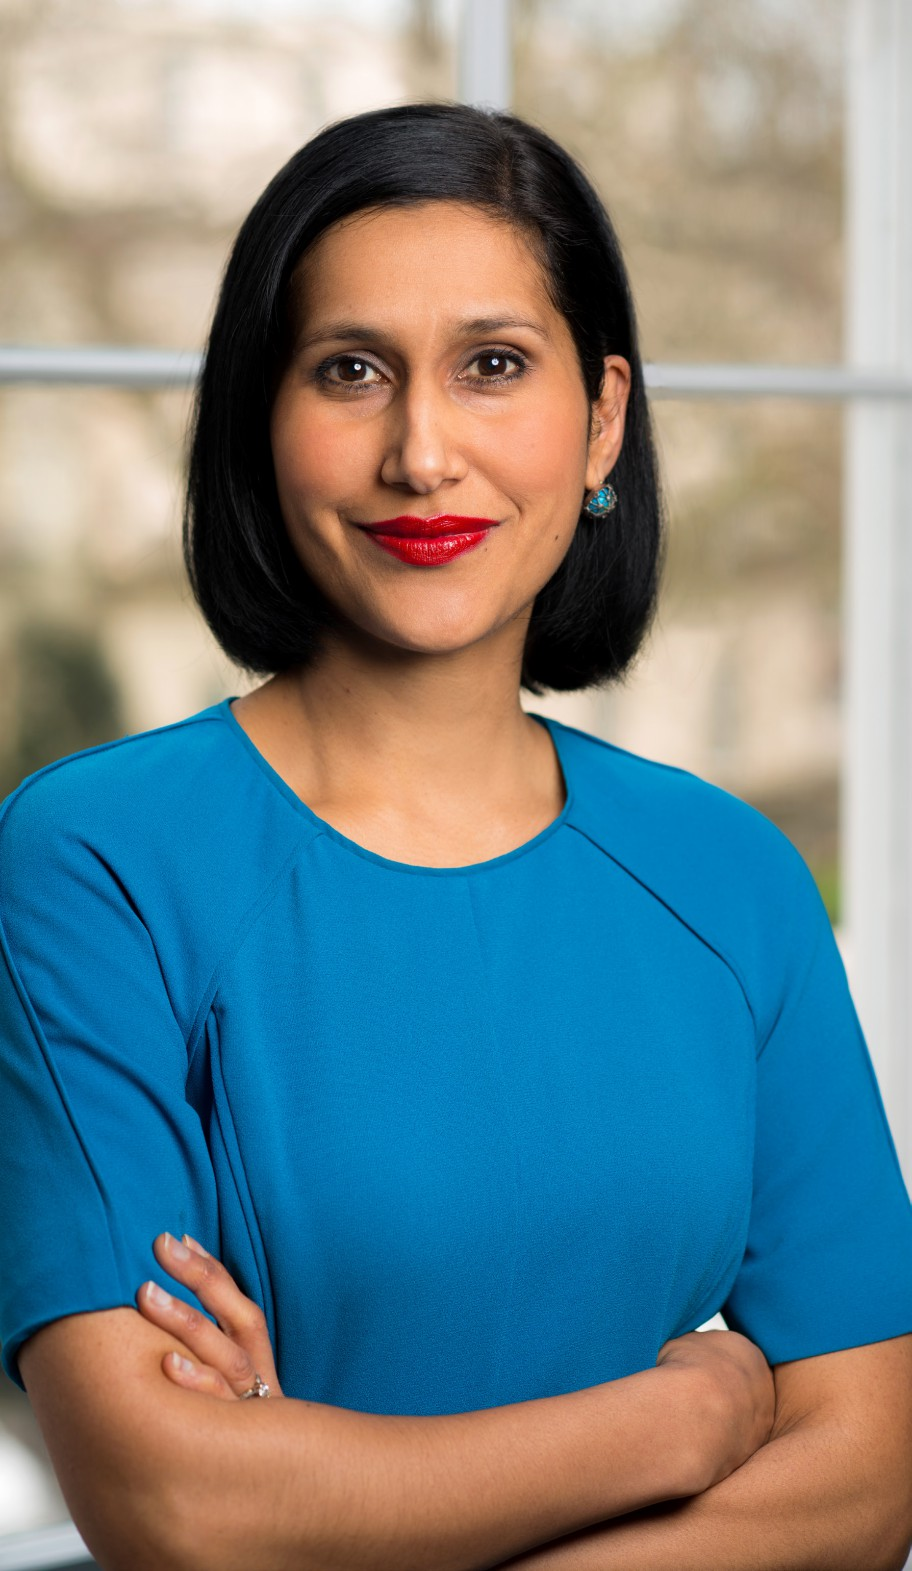 Hayaatun Sillem, newly appointed chief executive of the Royal Academy of Engineering - image courtesy of The Manufacturer.